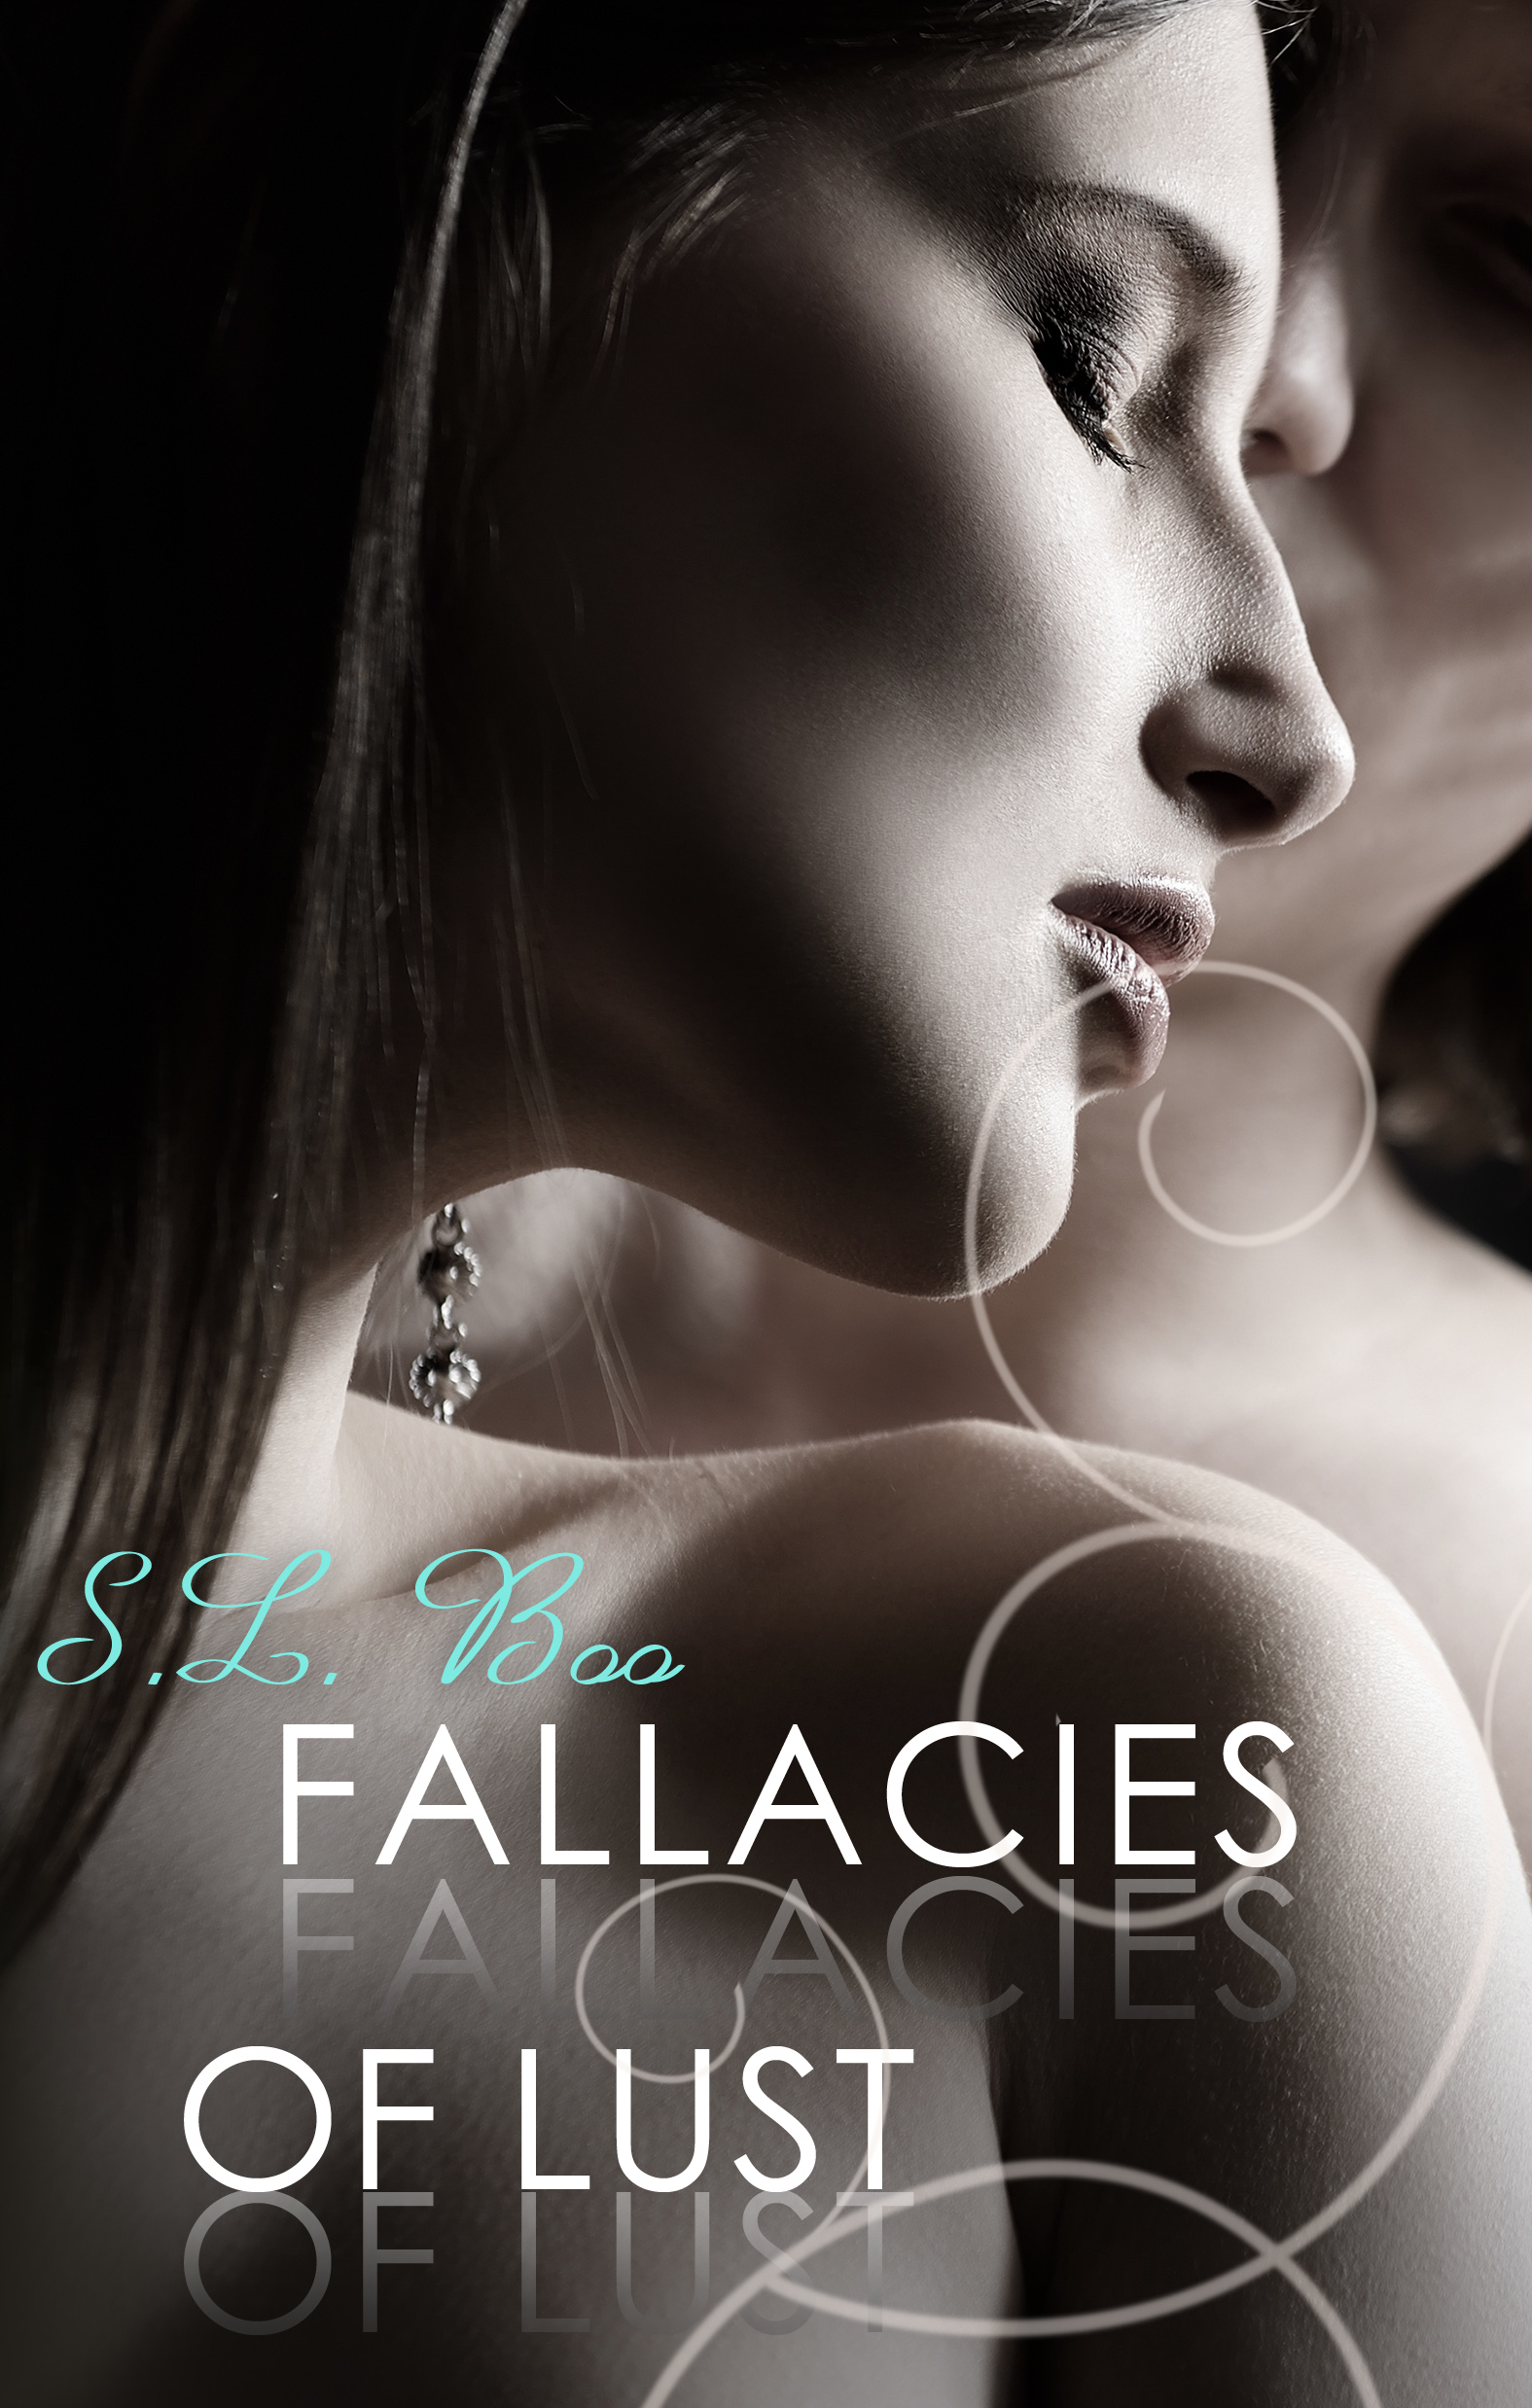 S.L. Boo - (For Fans of E.L. James, Sylvia Day, Maya Banks, Shayla Black, H.M. Ward) - Fallacies of Lust